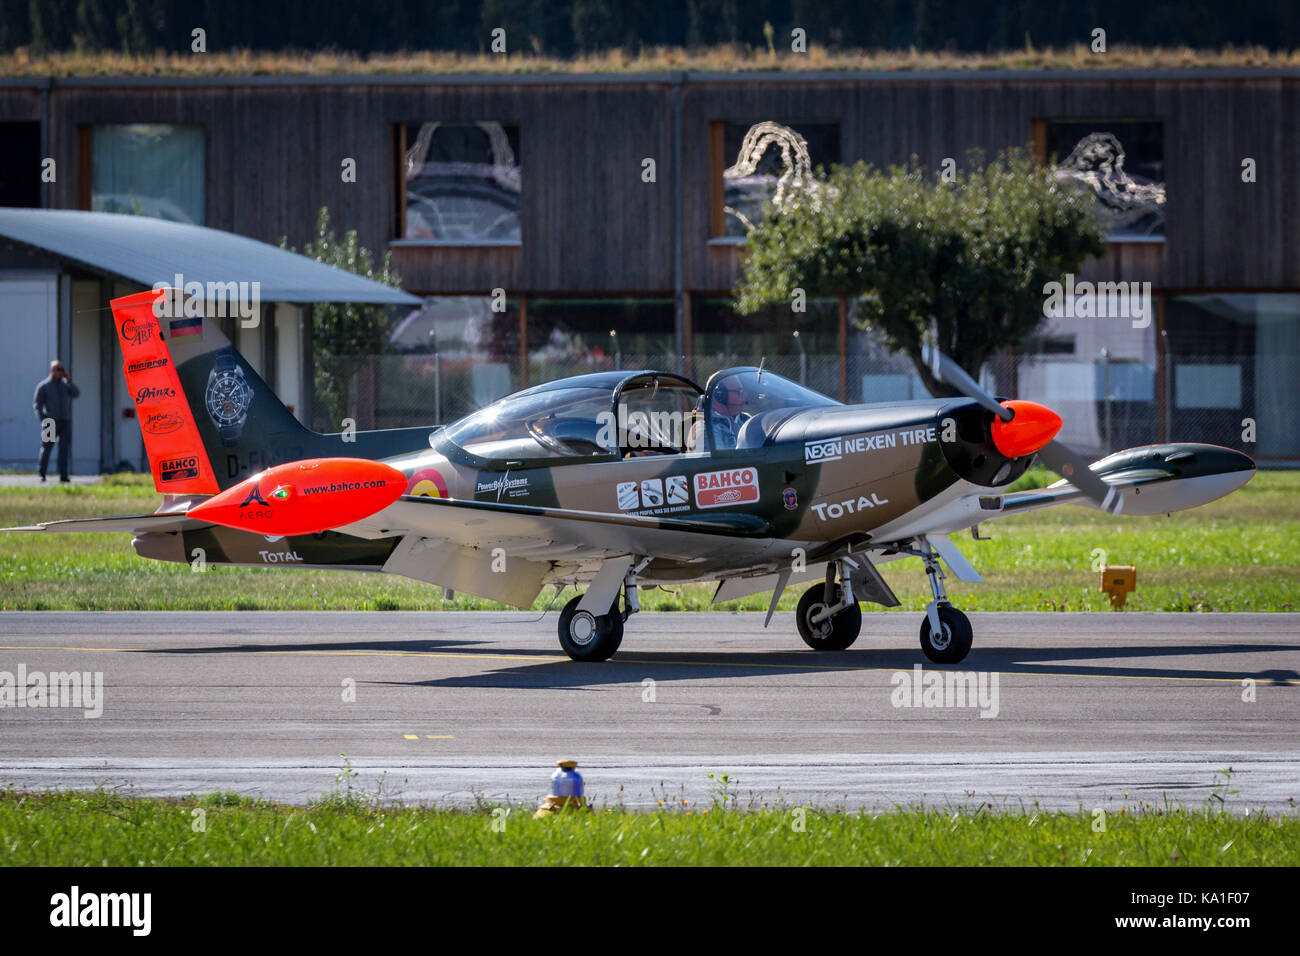 A Siai Marchetti SF-260 at Breitling Sion Airshow, Valais, Switzerland - Stock Image